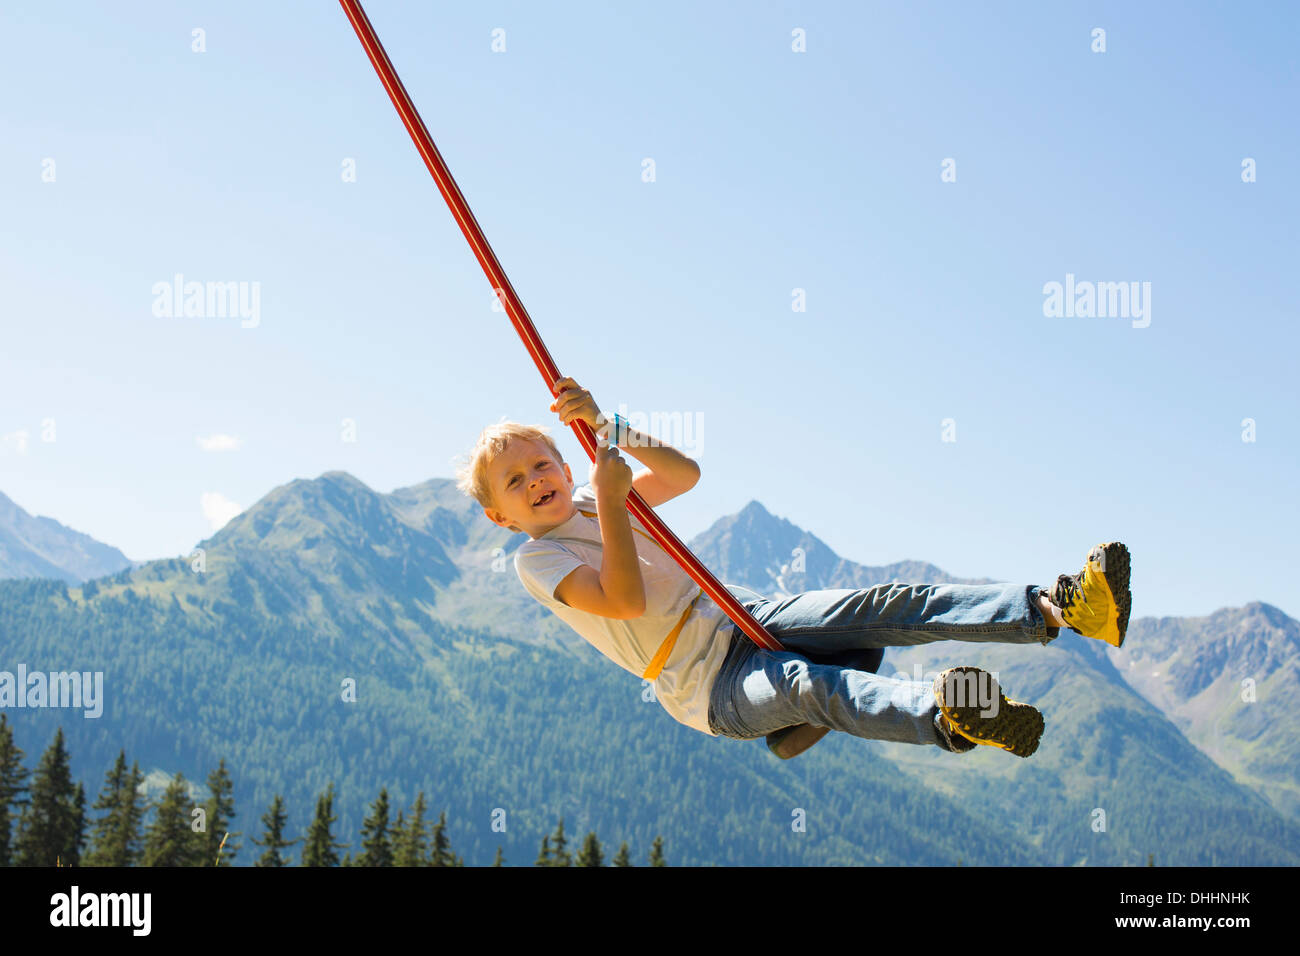 Boy playing on swing, Tyrol, Austria - Stock Image